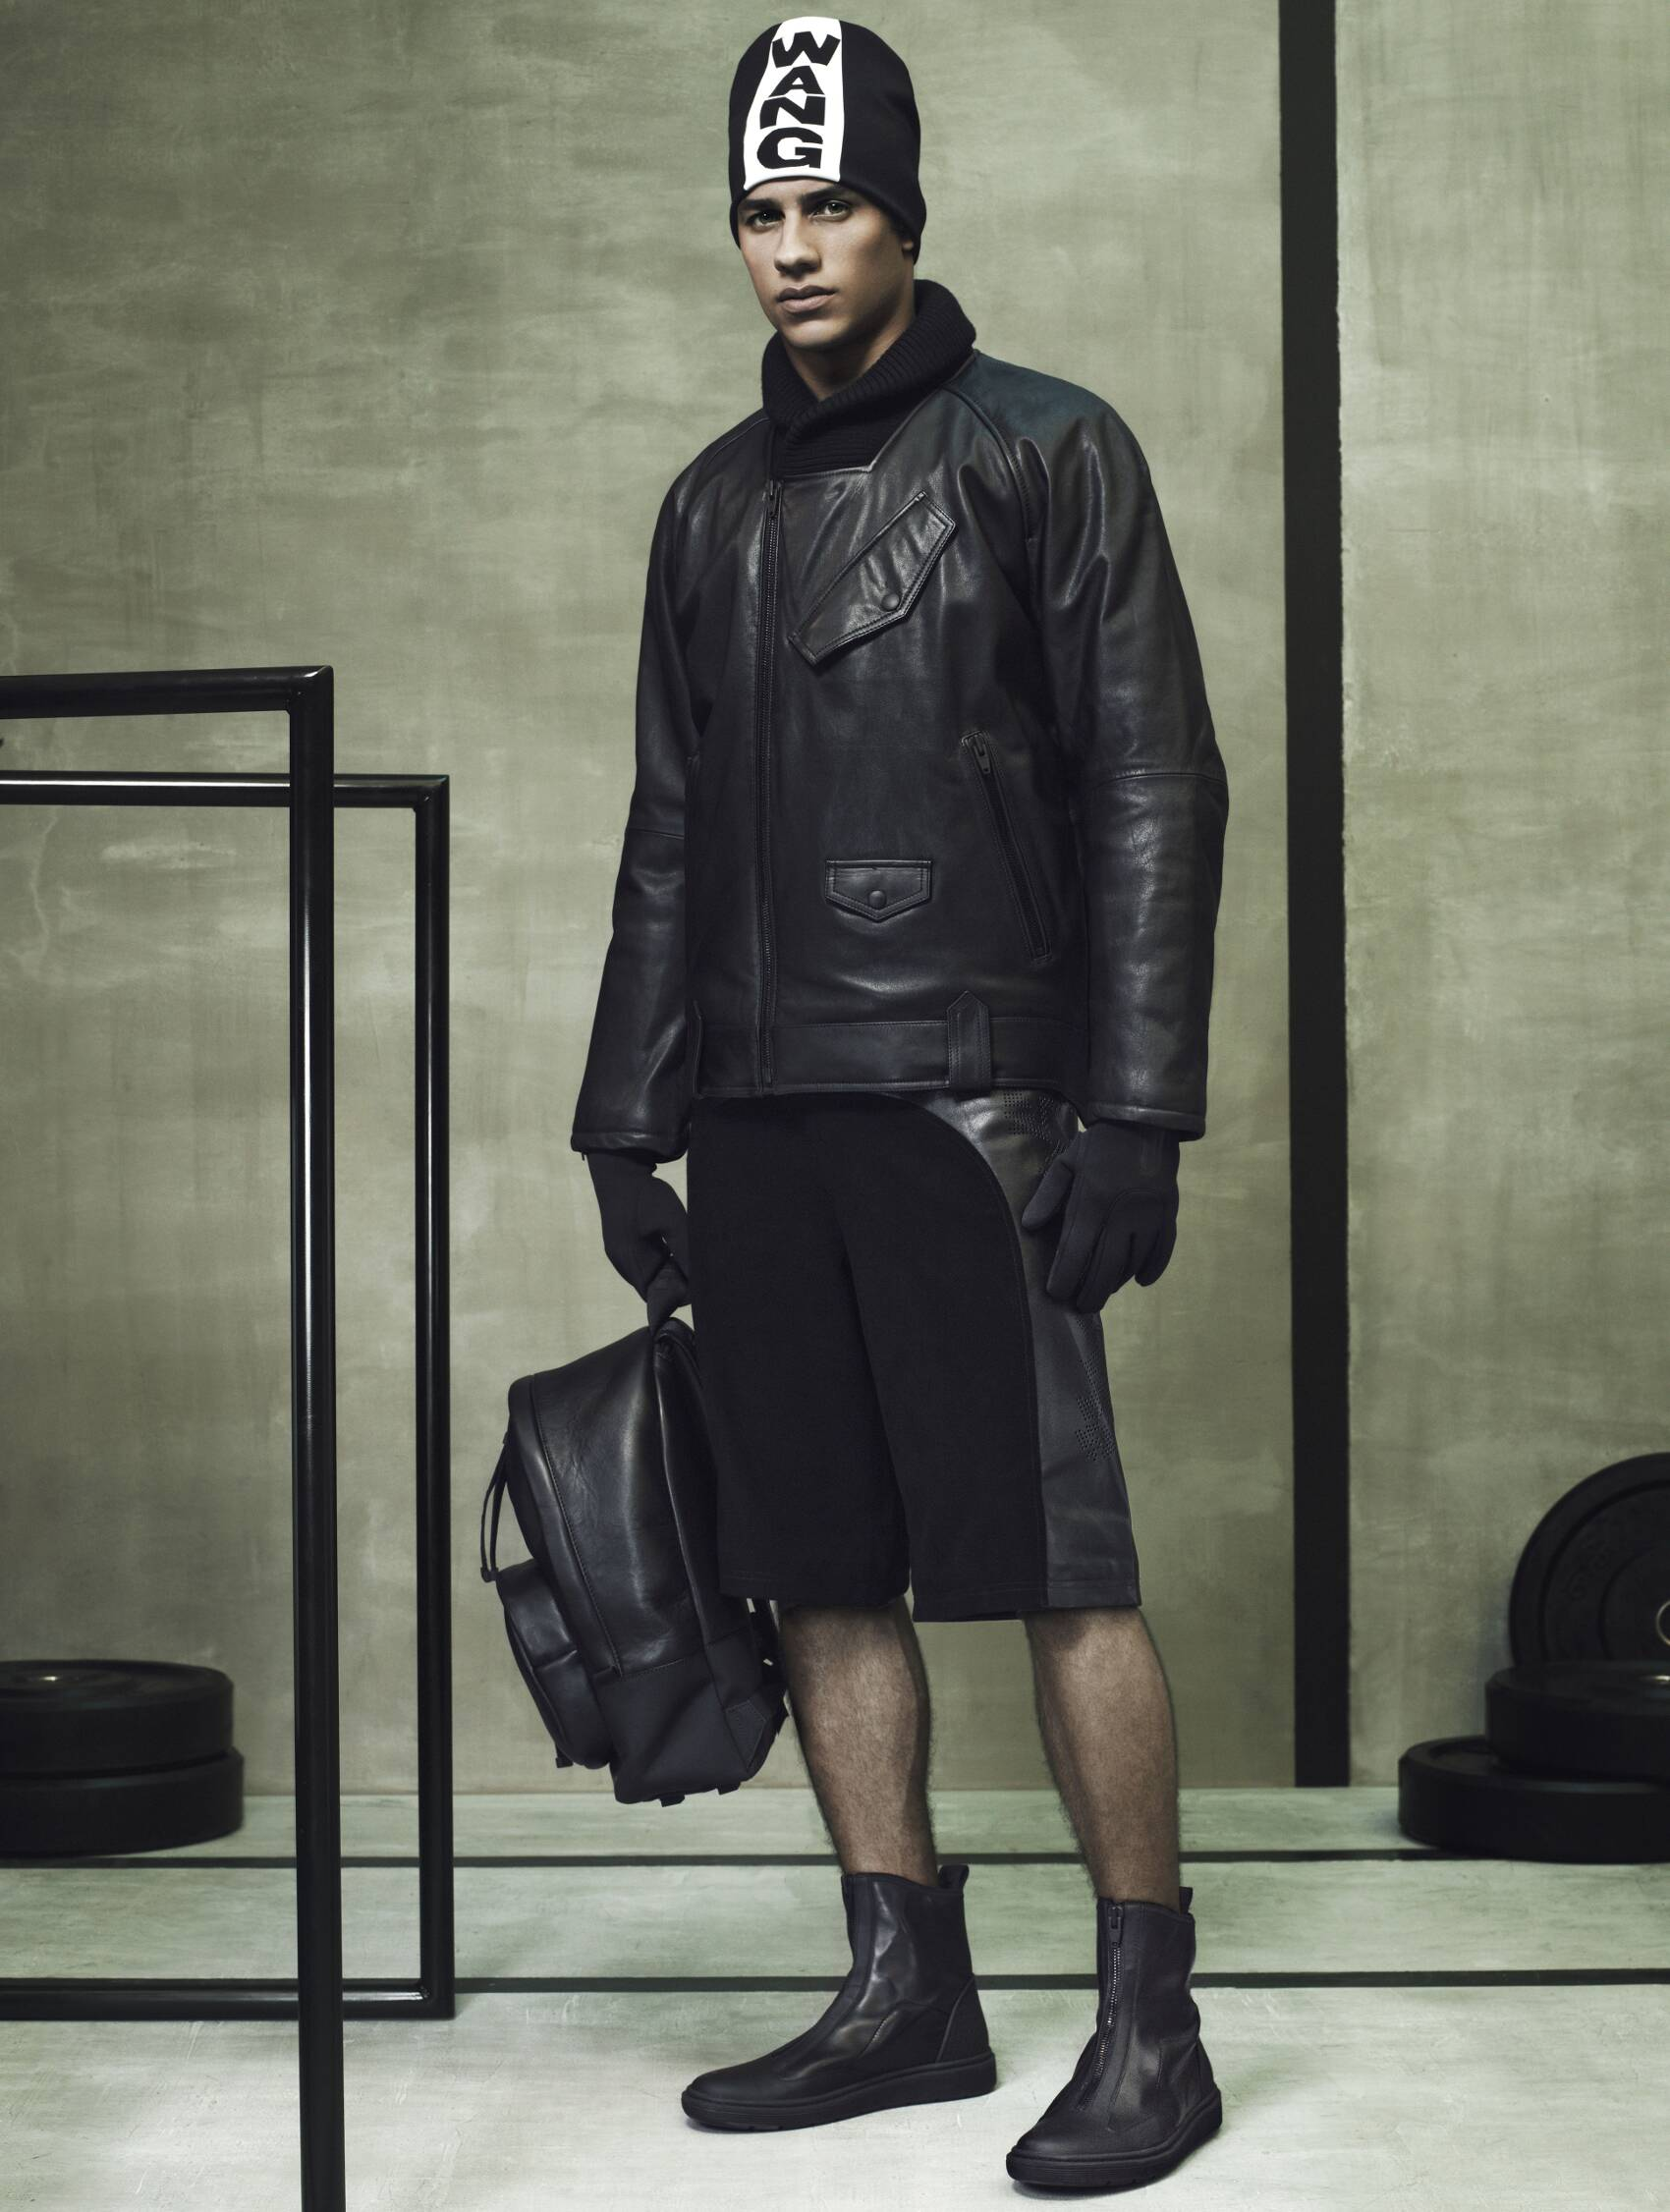 2015 Fashion Trends Menswear Alexander Wang for H&M